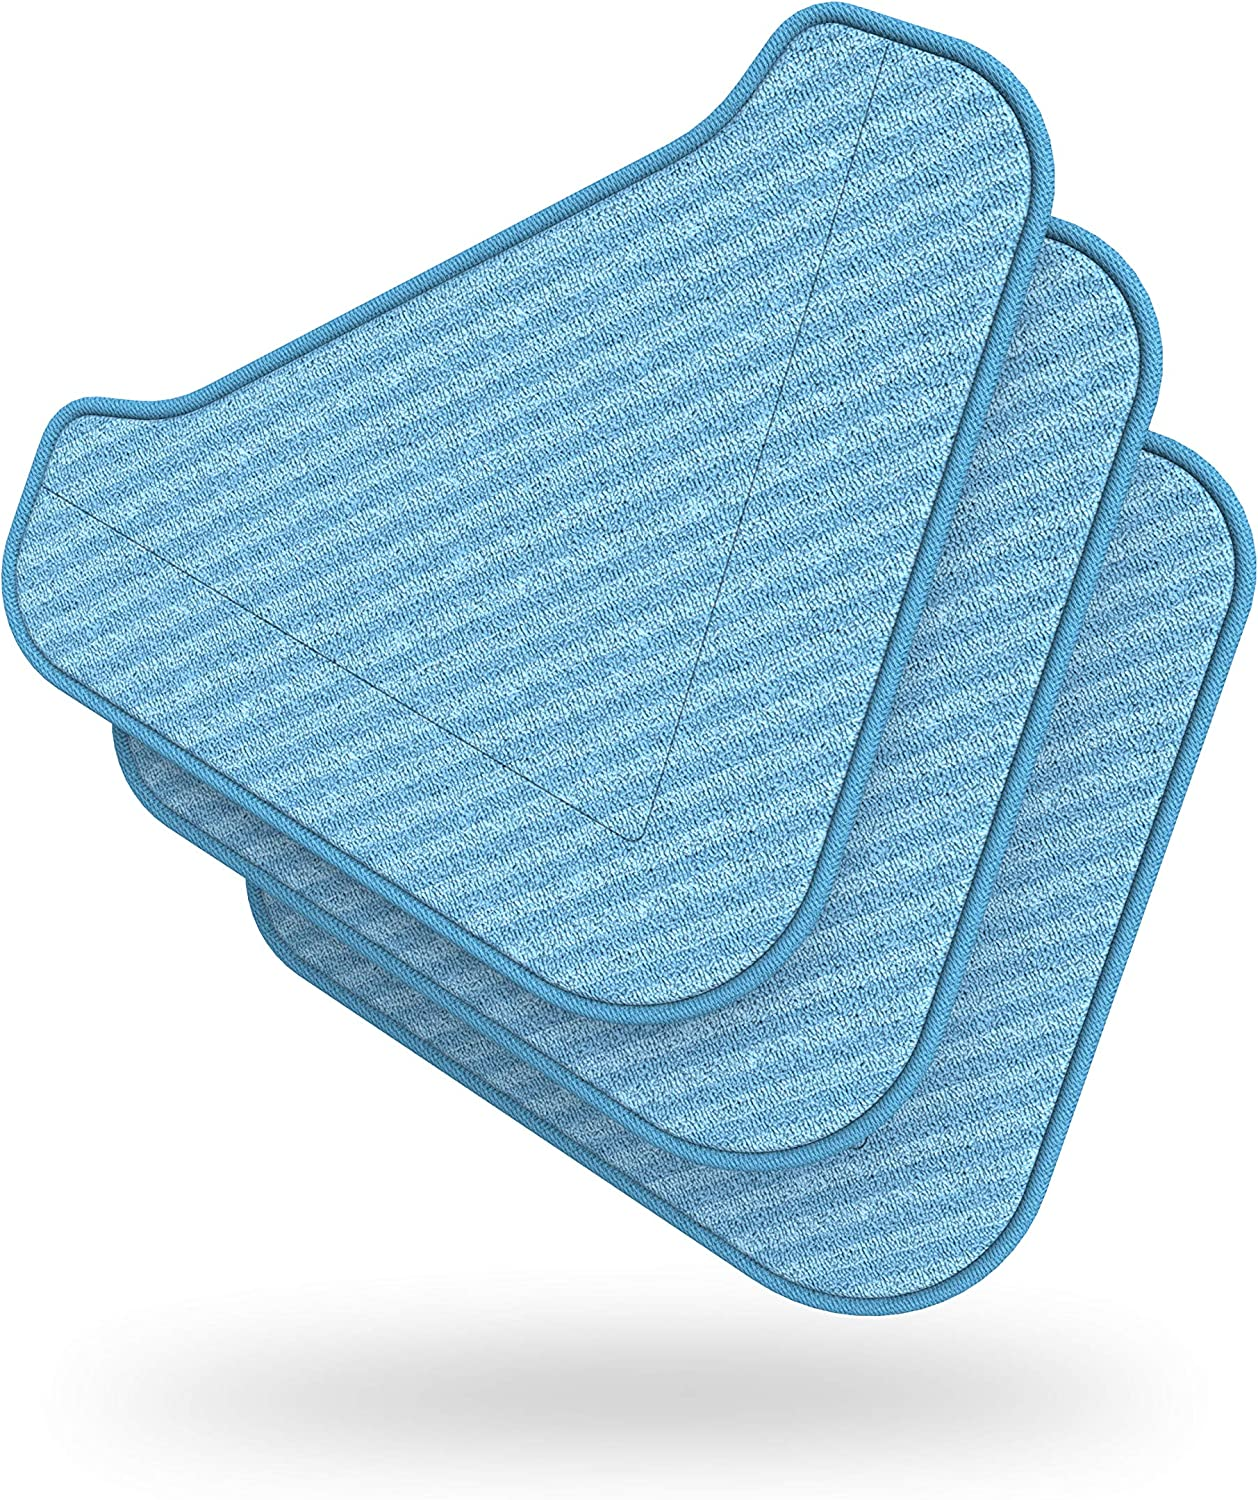 Ultra-Absorbent Super popular specialty store Triangle Replacement Mop Pads R for XL PureClean safety